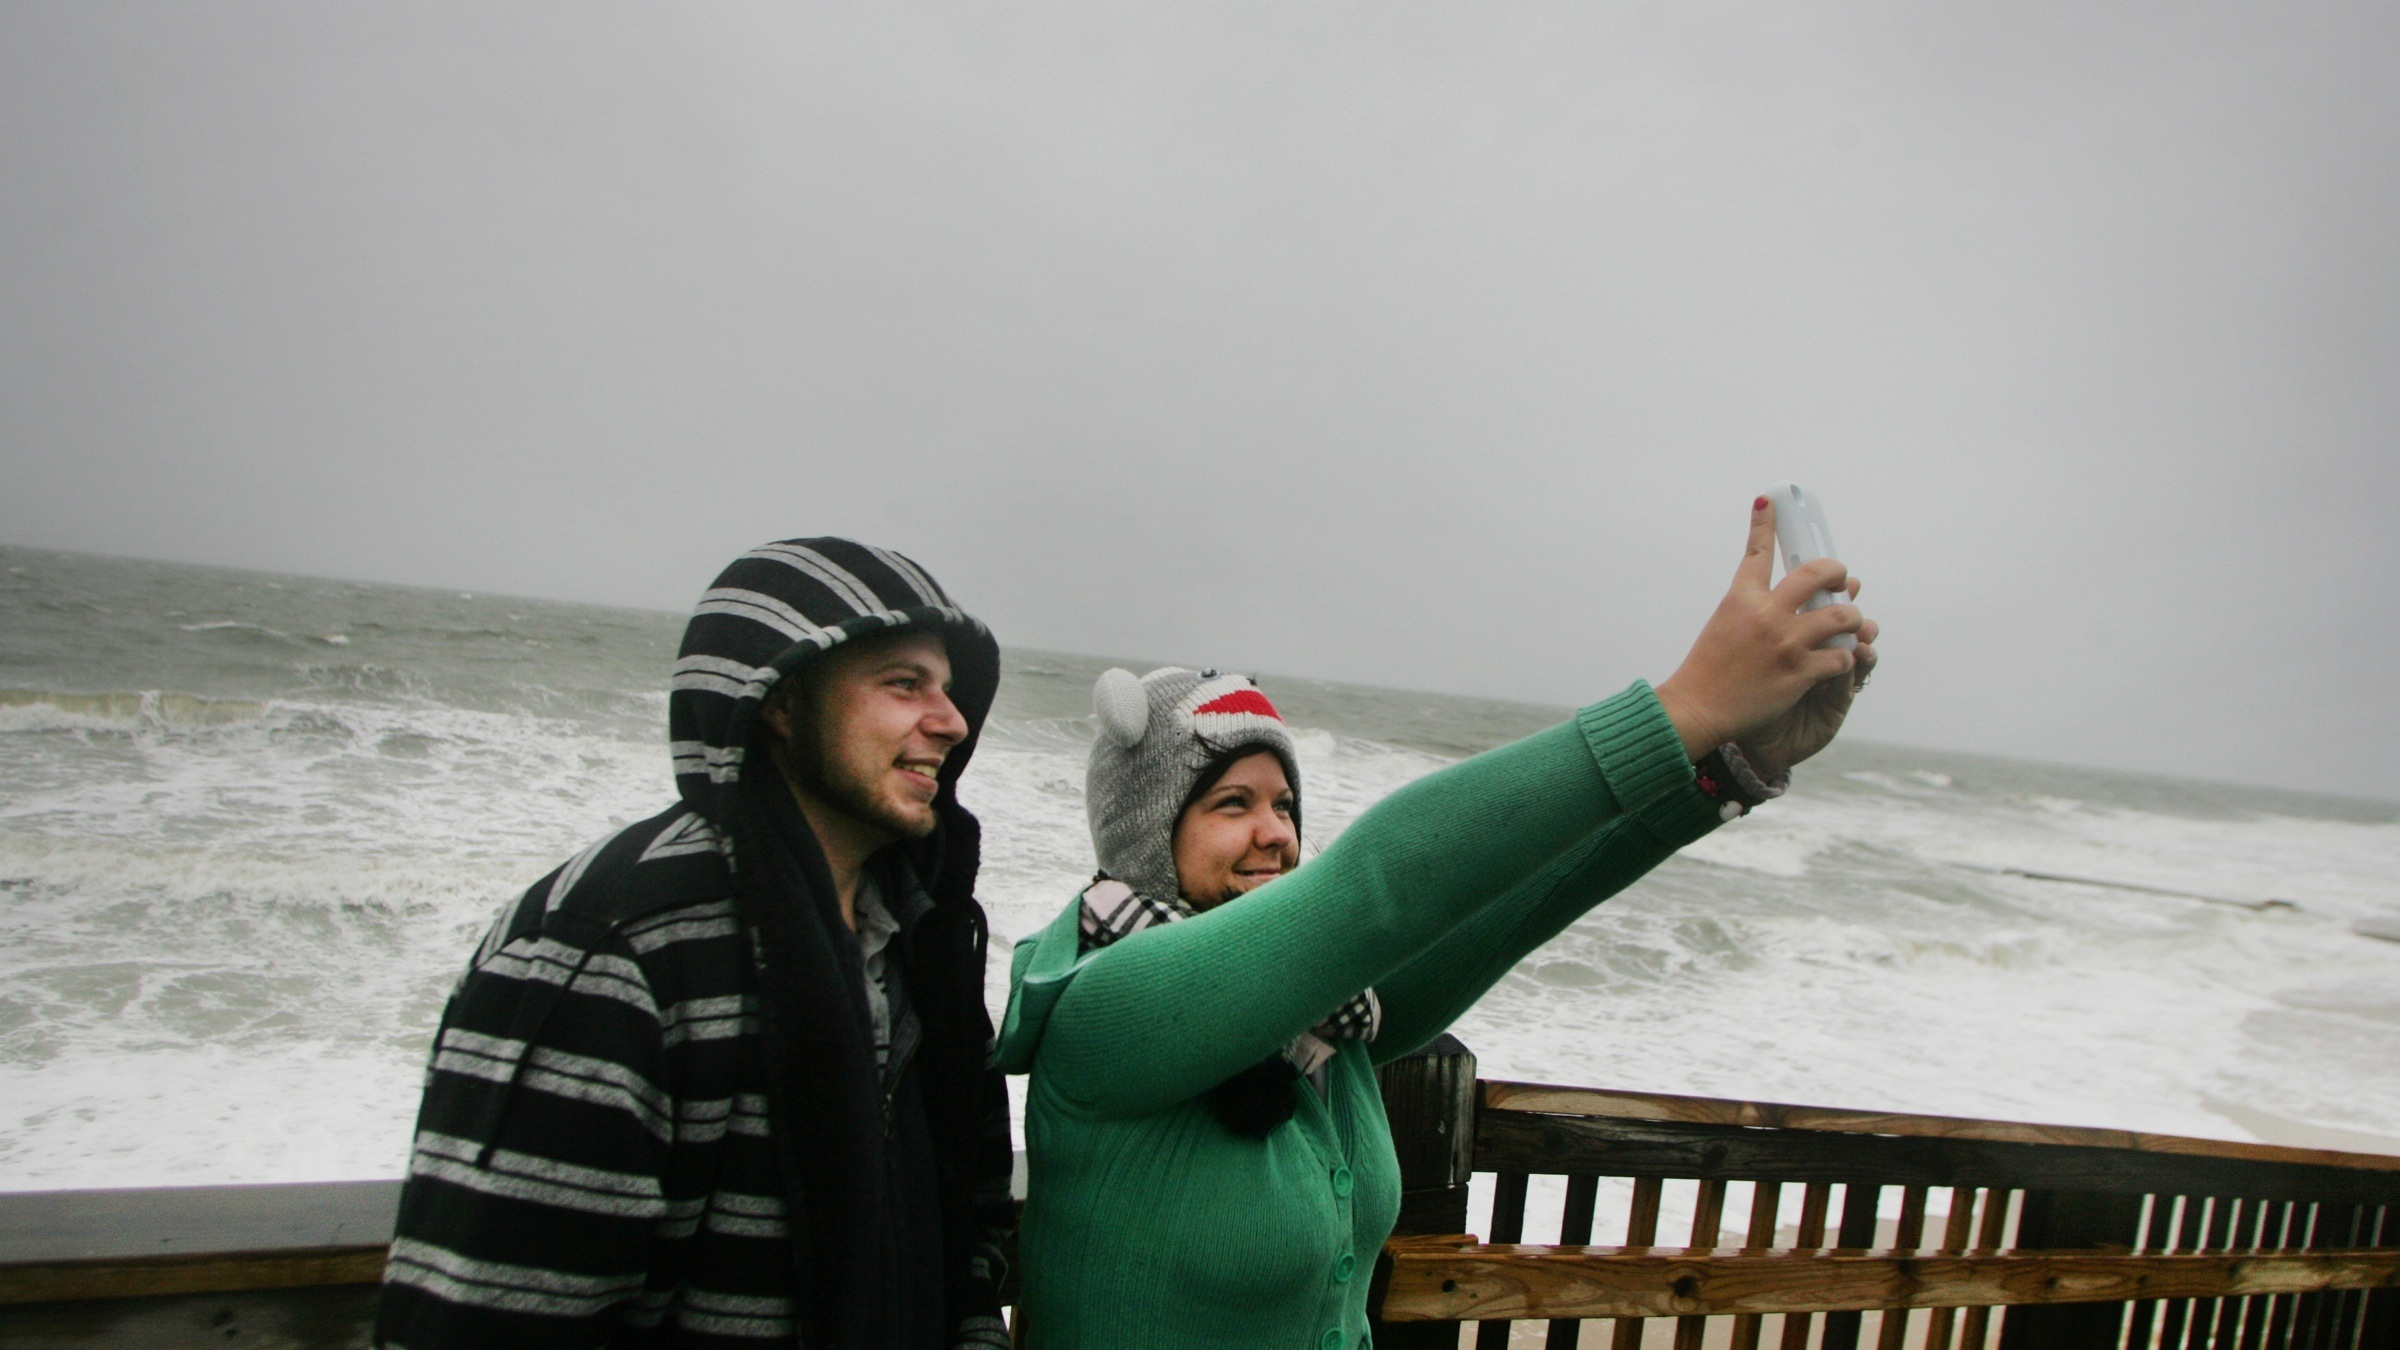 Lisa and Michael Chamberlain, a newlywed couple who is on their honeymoon, take a cell phone picture of themselves with the pounding surf from Hurricane Sandy in the background, Sunday, Oct. 28, 2012 in Virginia Beach, Va.    (AP Photo/Jason Hirschfeld)